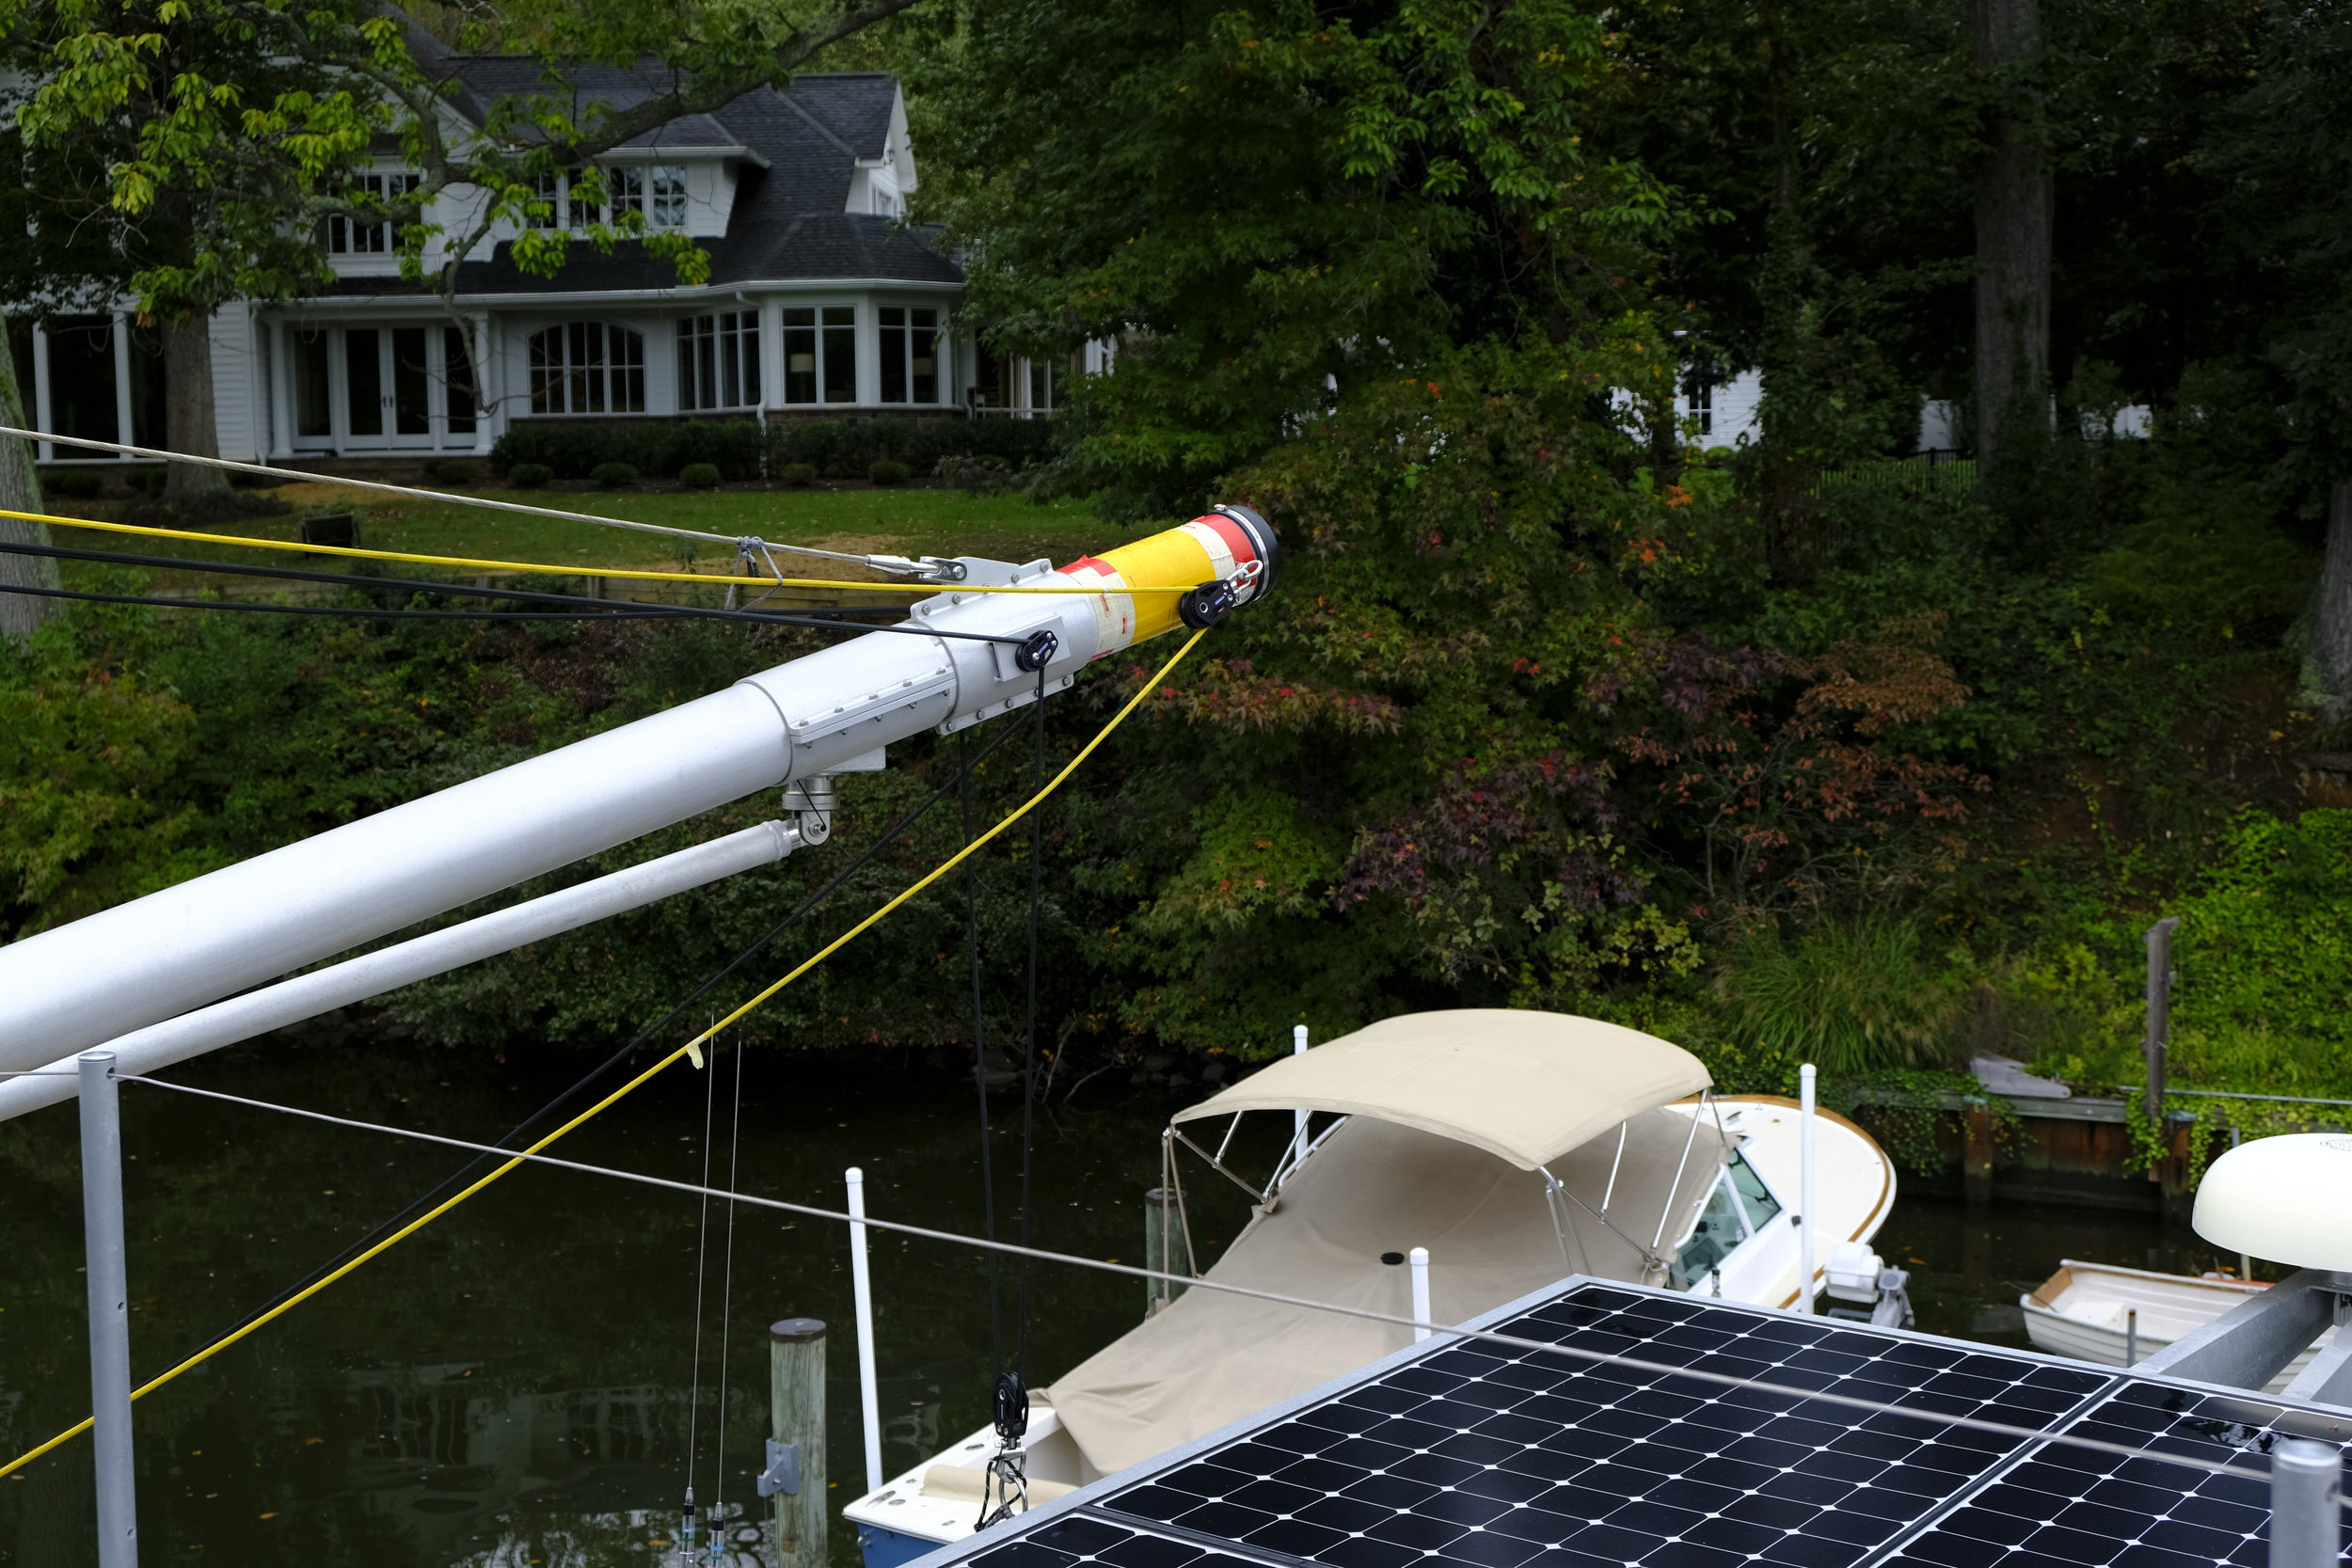 Details of the booms show the lines used to lift the dinghy and control the boom. All lines are super-strong Spectra lines, way stronger than their diameter might suggest. Note the solar array over the aft deck.